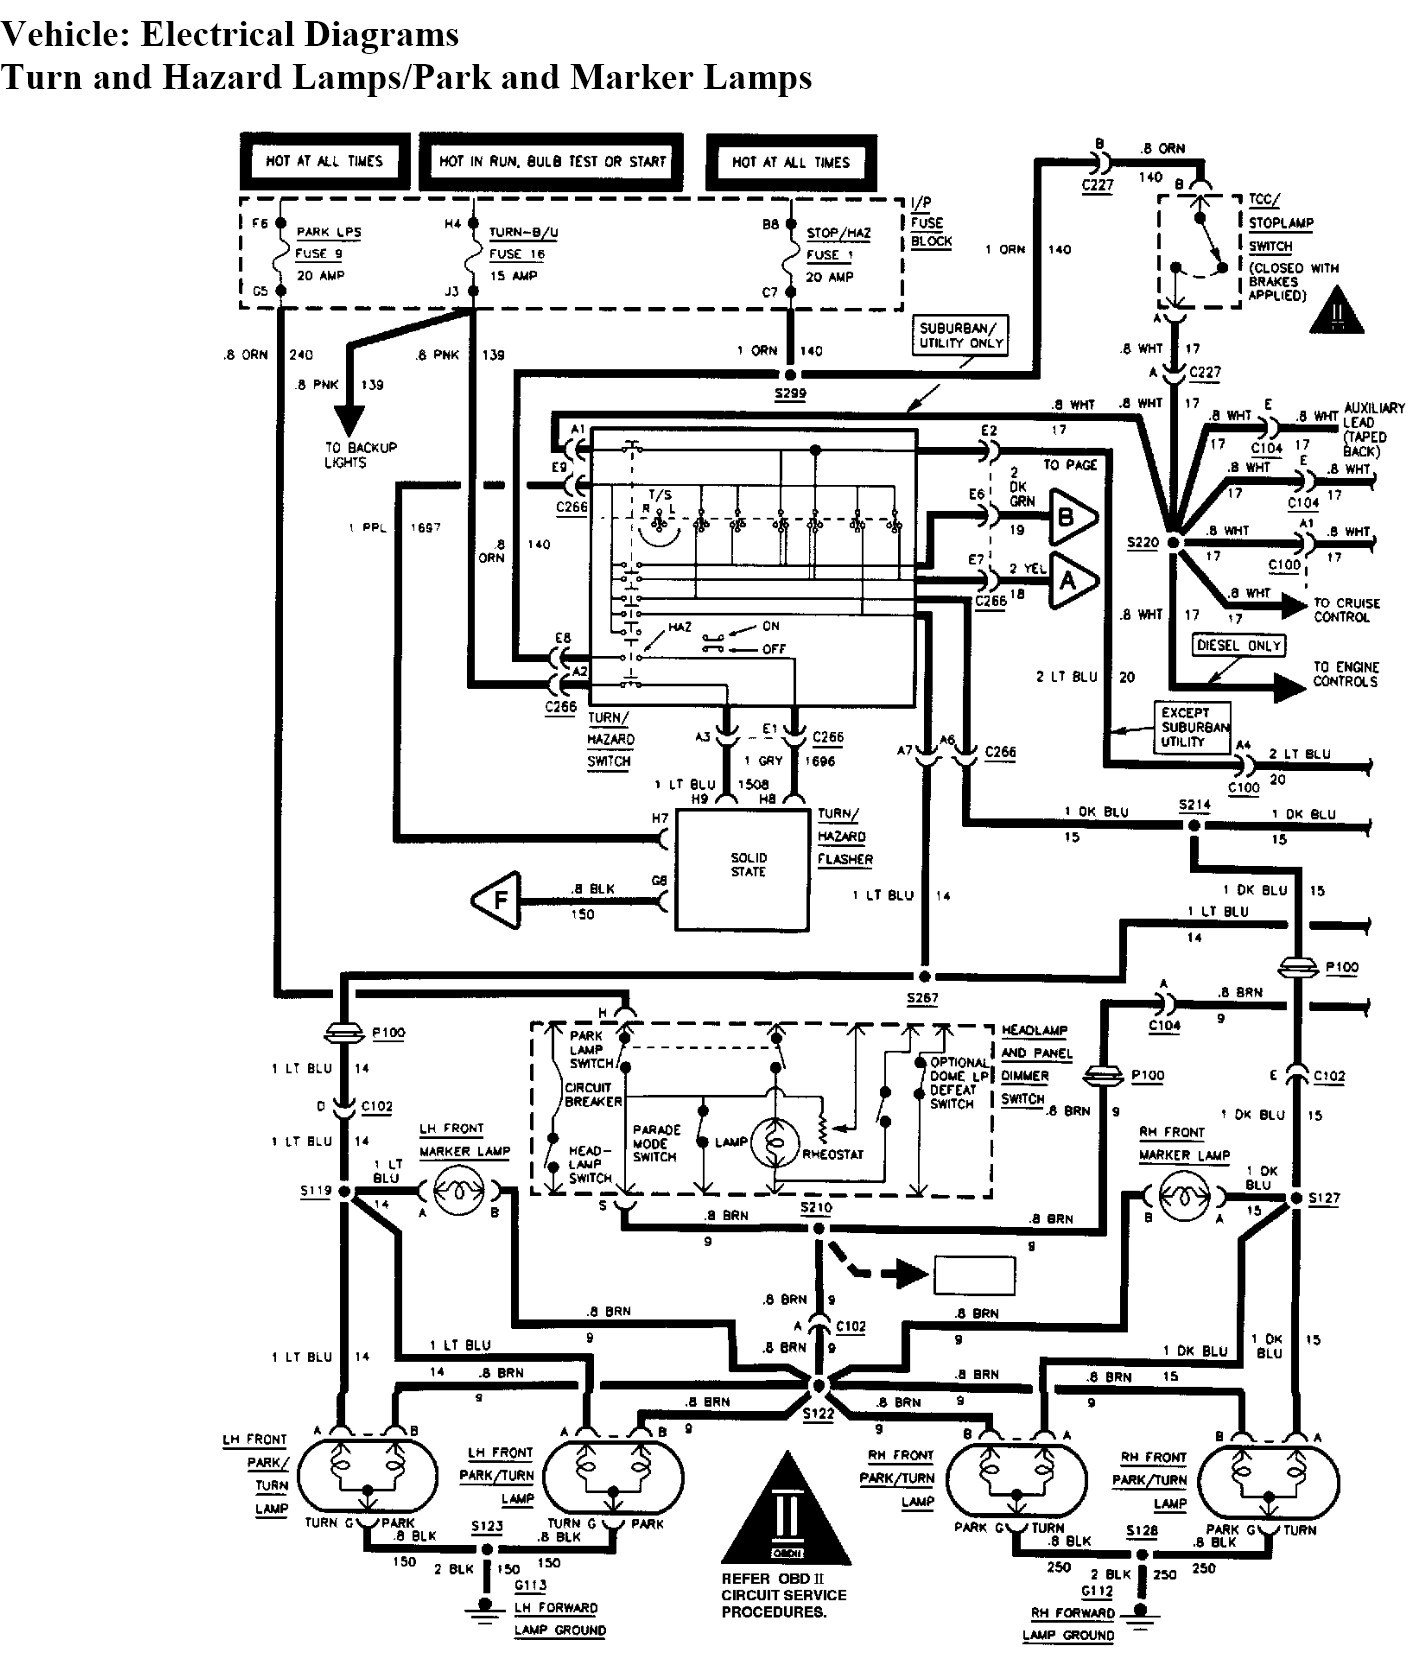 Chevrolet Tracker Wiring Diagram Body Custom Project Atv Schematic Hondatz400es What Can Cause My Brake Lights On 1997 Chevy Tahoe Not